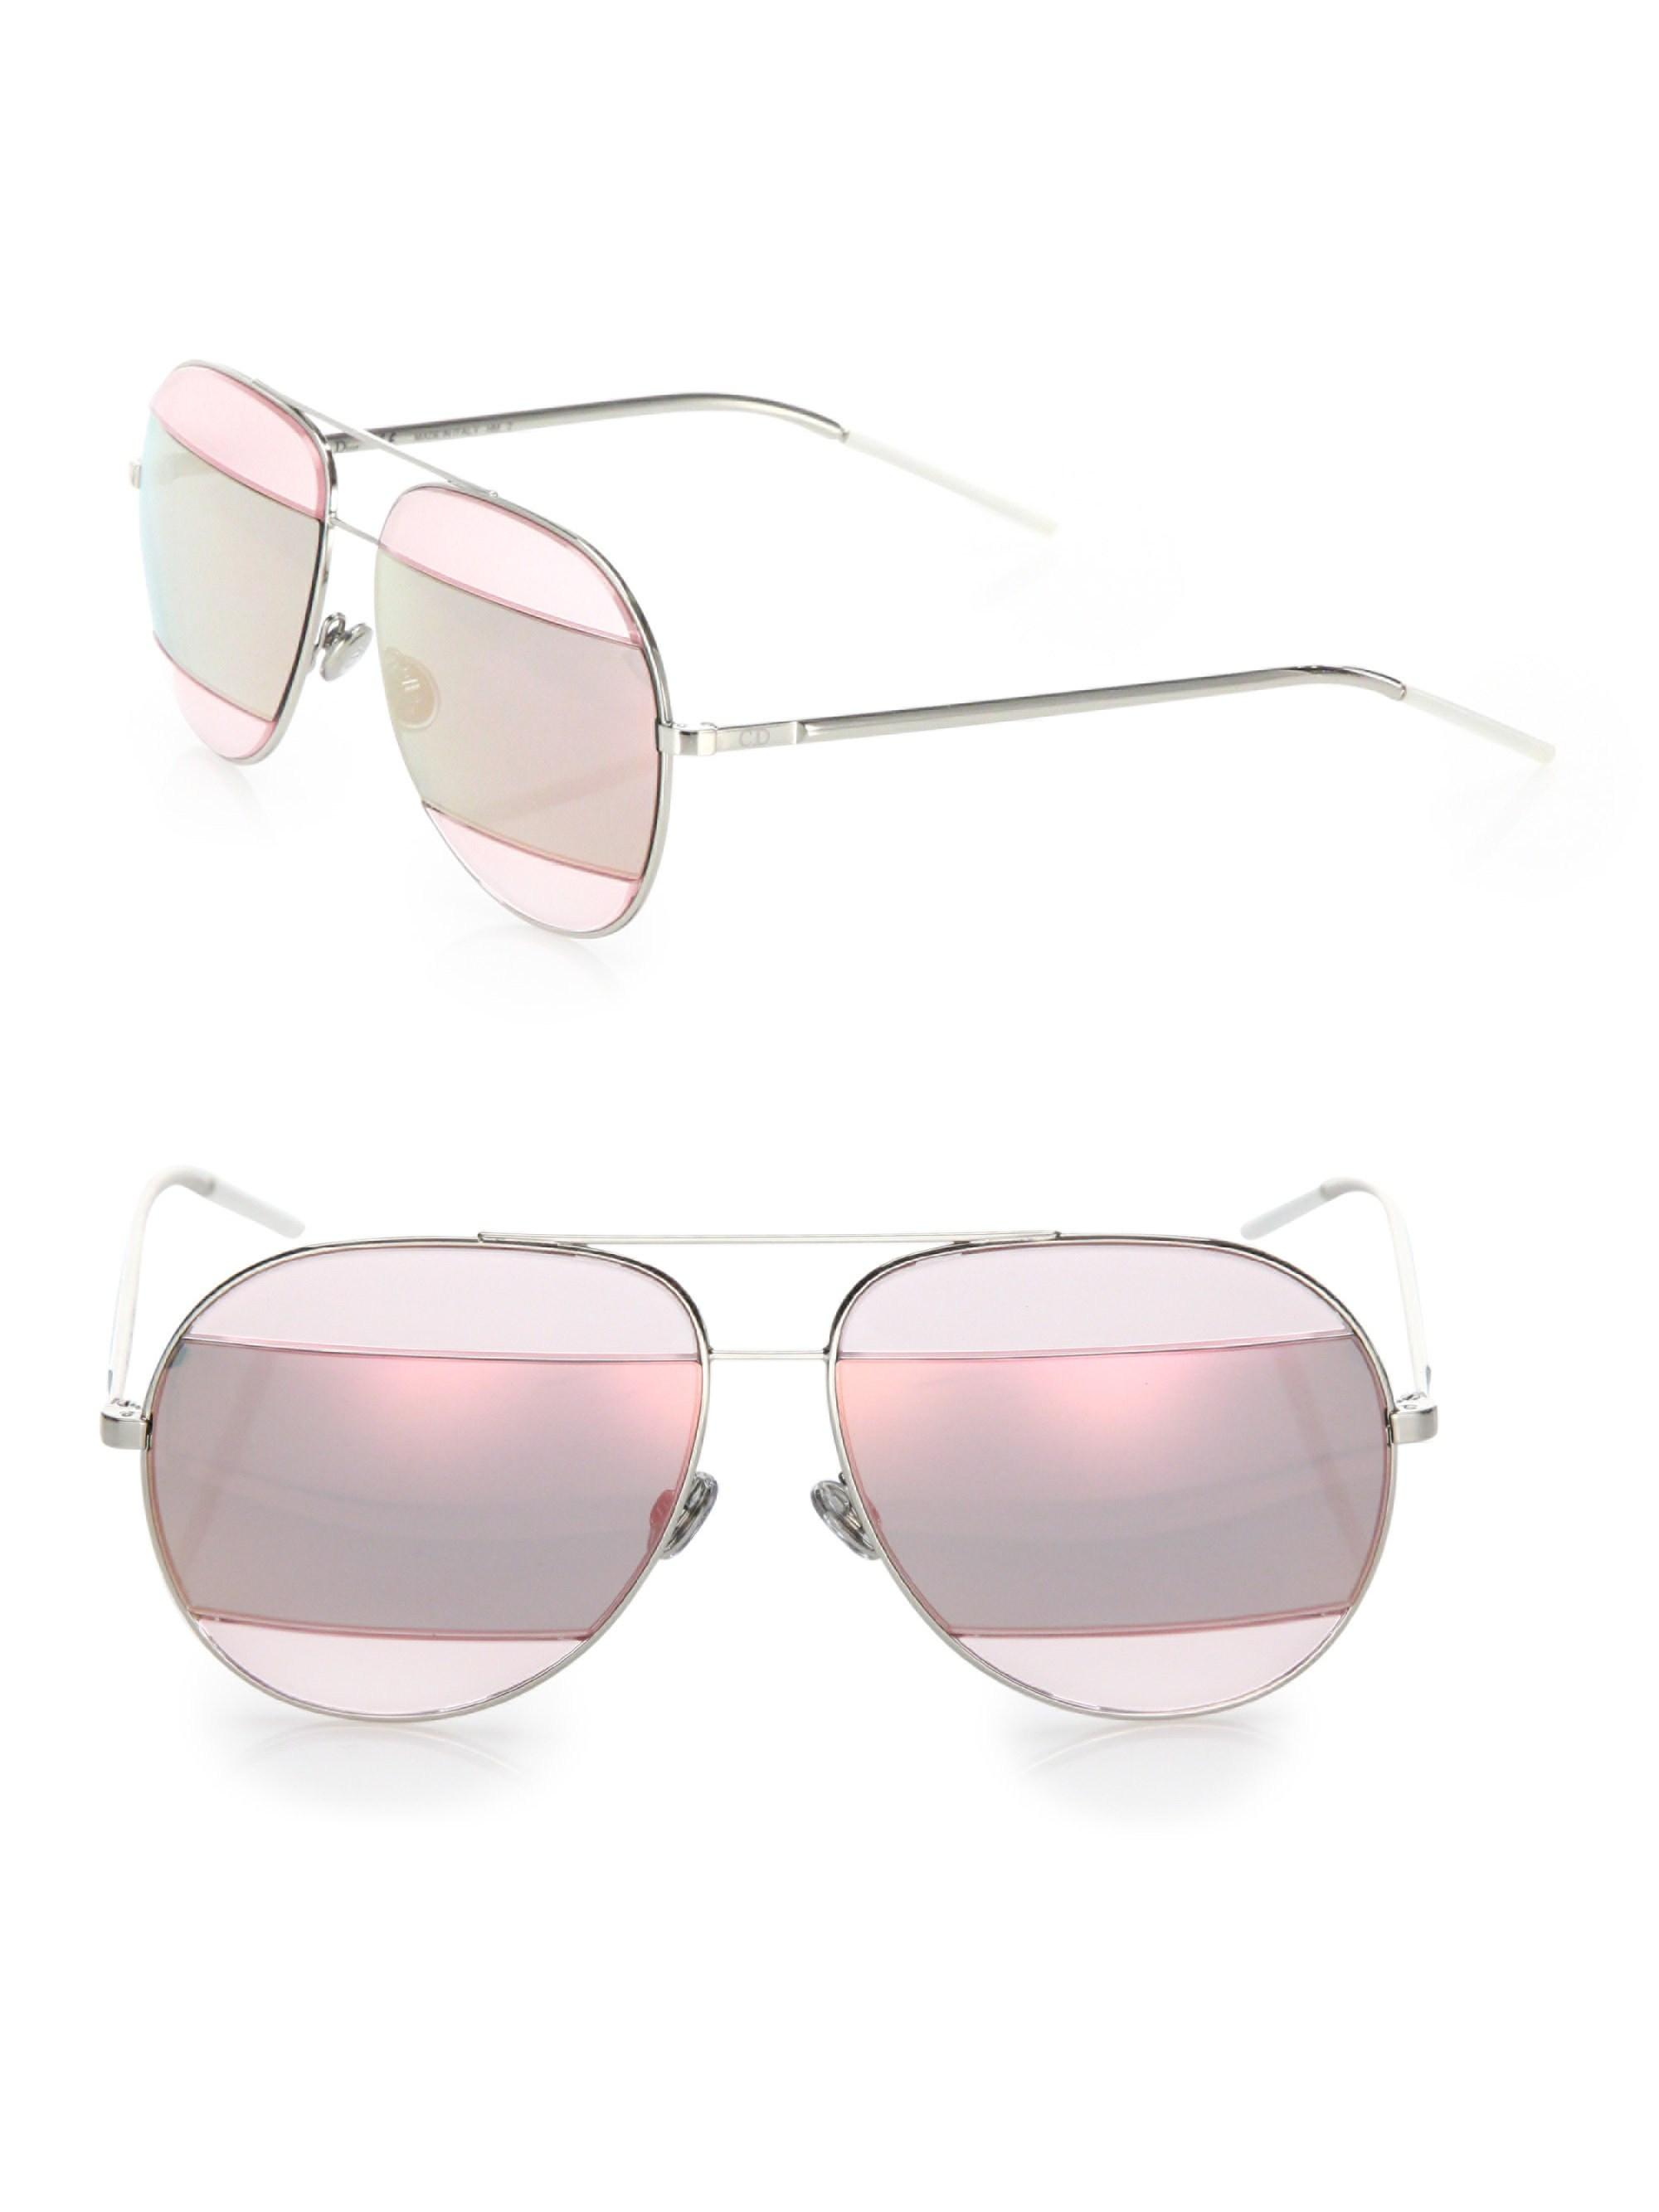 3b7a3c1441 Gallery. Previously sold at  Saks Fifth Avenue · Women s Mirrored Sunglasses